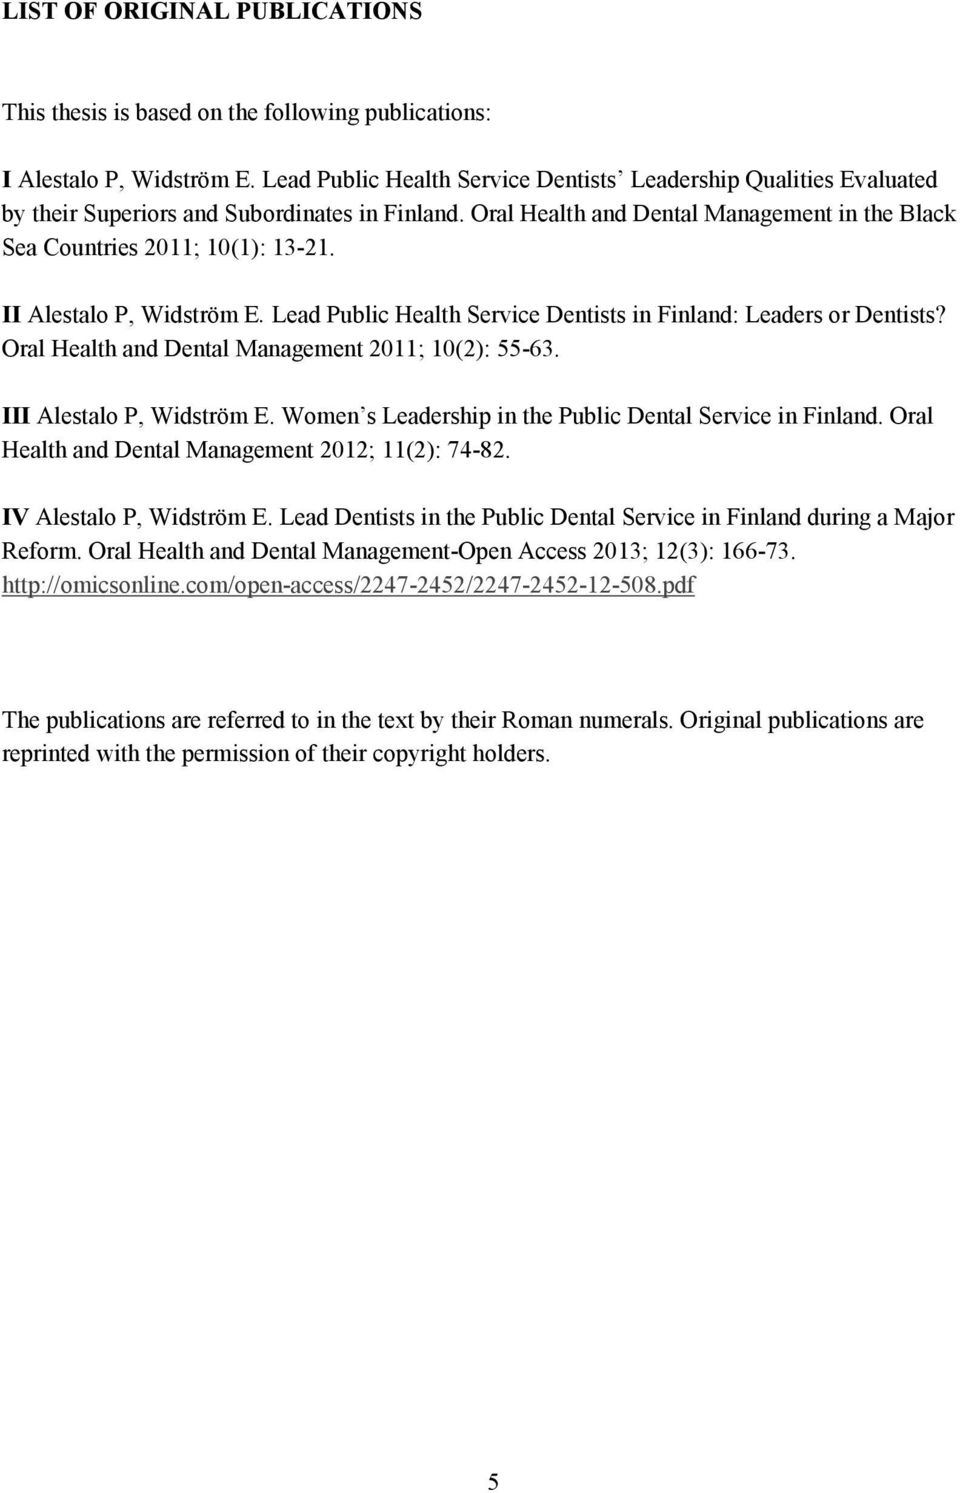 II Alestalo P, Widström E. Lead Public Health Service Dentists in Finland: Leaders or Dentists? Oral Health and Dental Management 2011; 10(2): 55-63. III Alestalo P, Widström E.